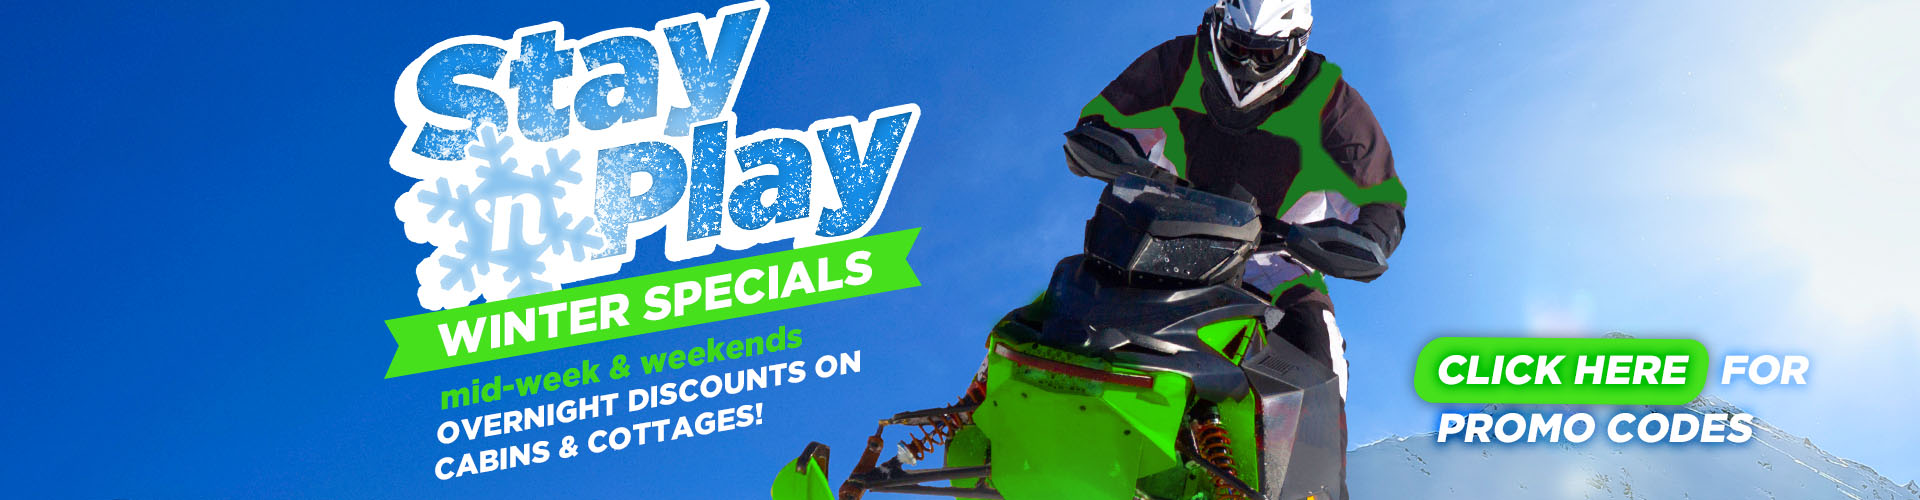 Winter Stay N Play Specials Overnight Specials on cabins and cottages